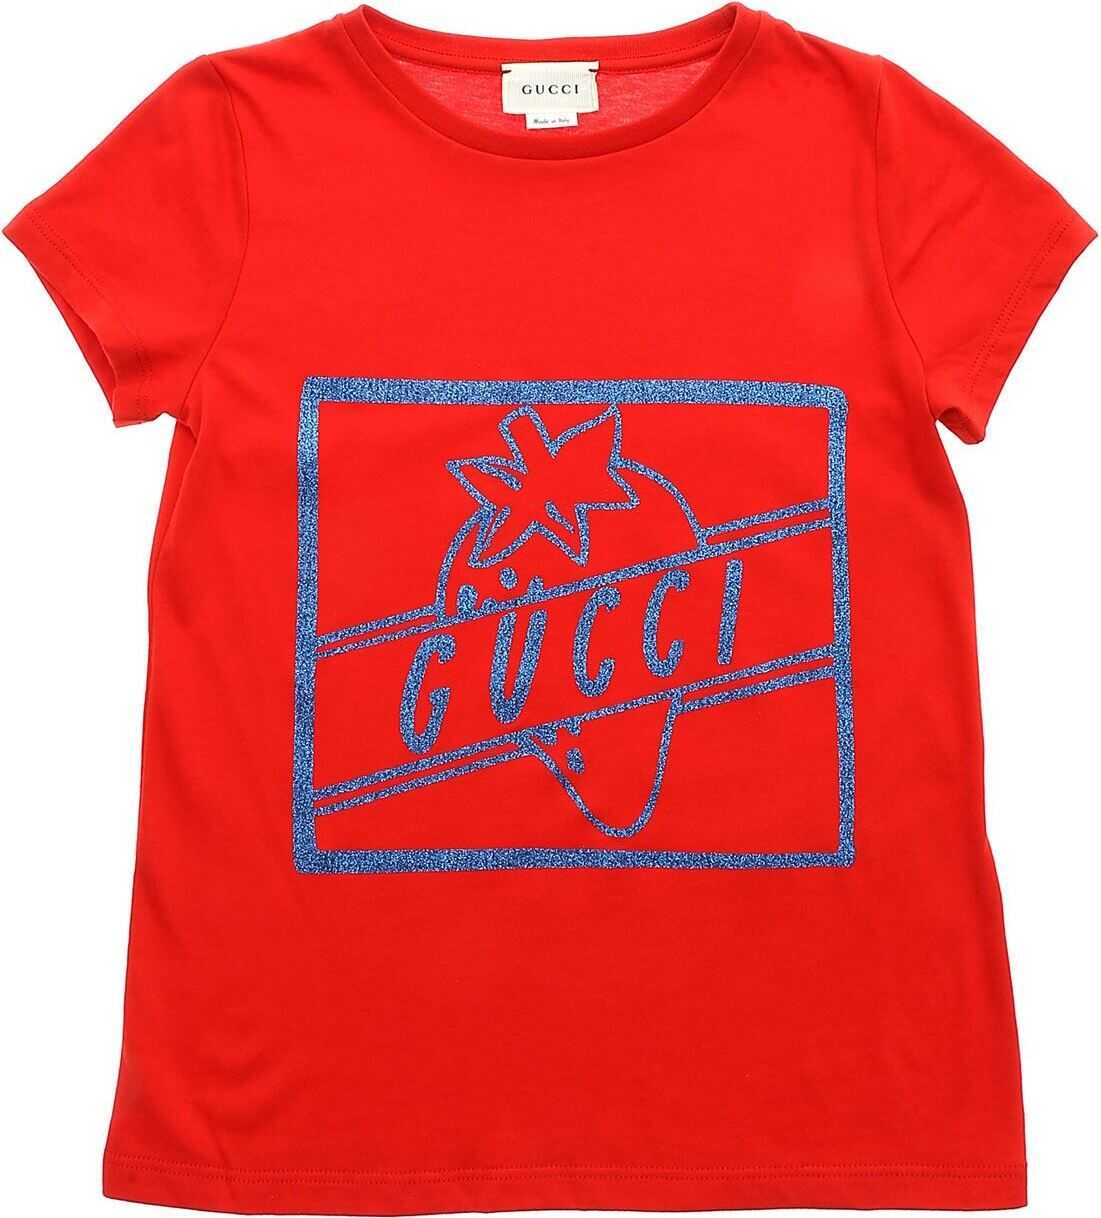 Glitter Printed T-Shirt In Red thumbnail